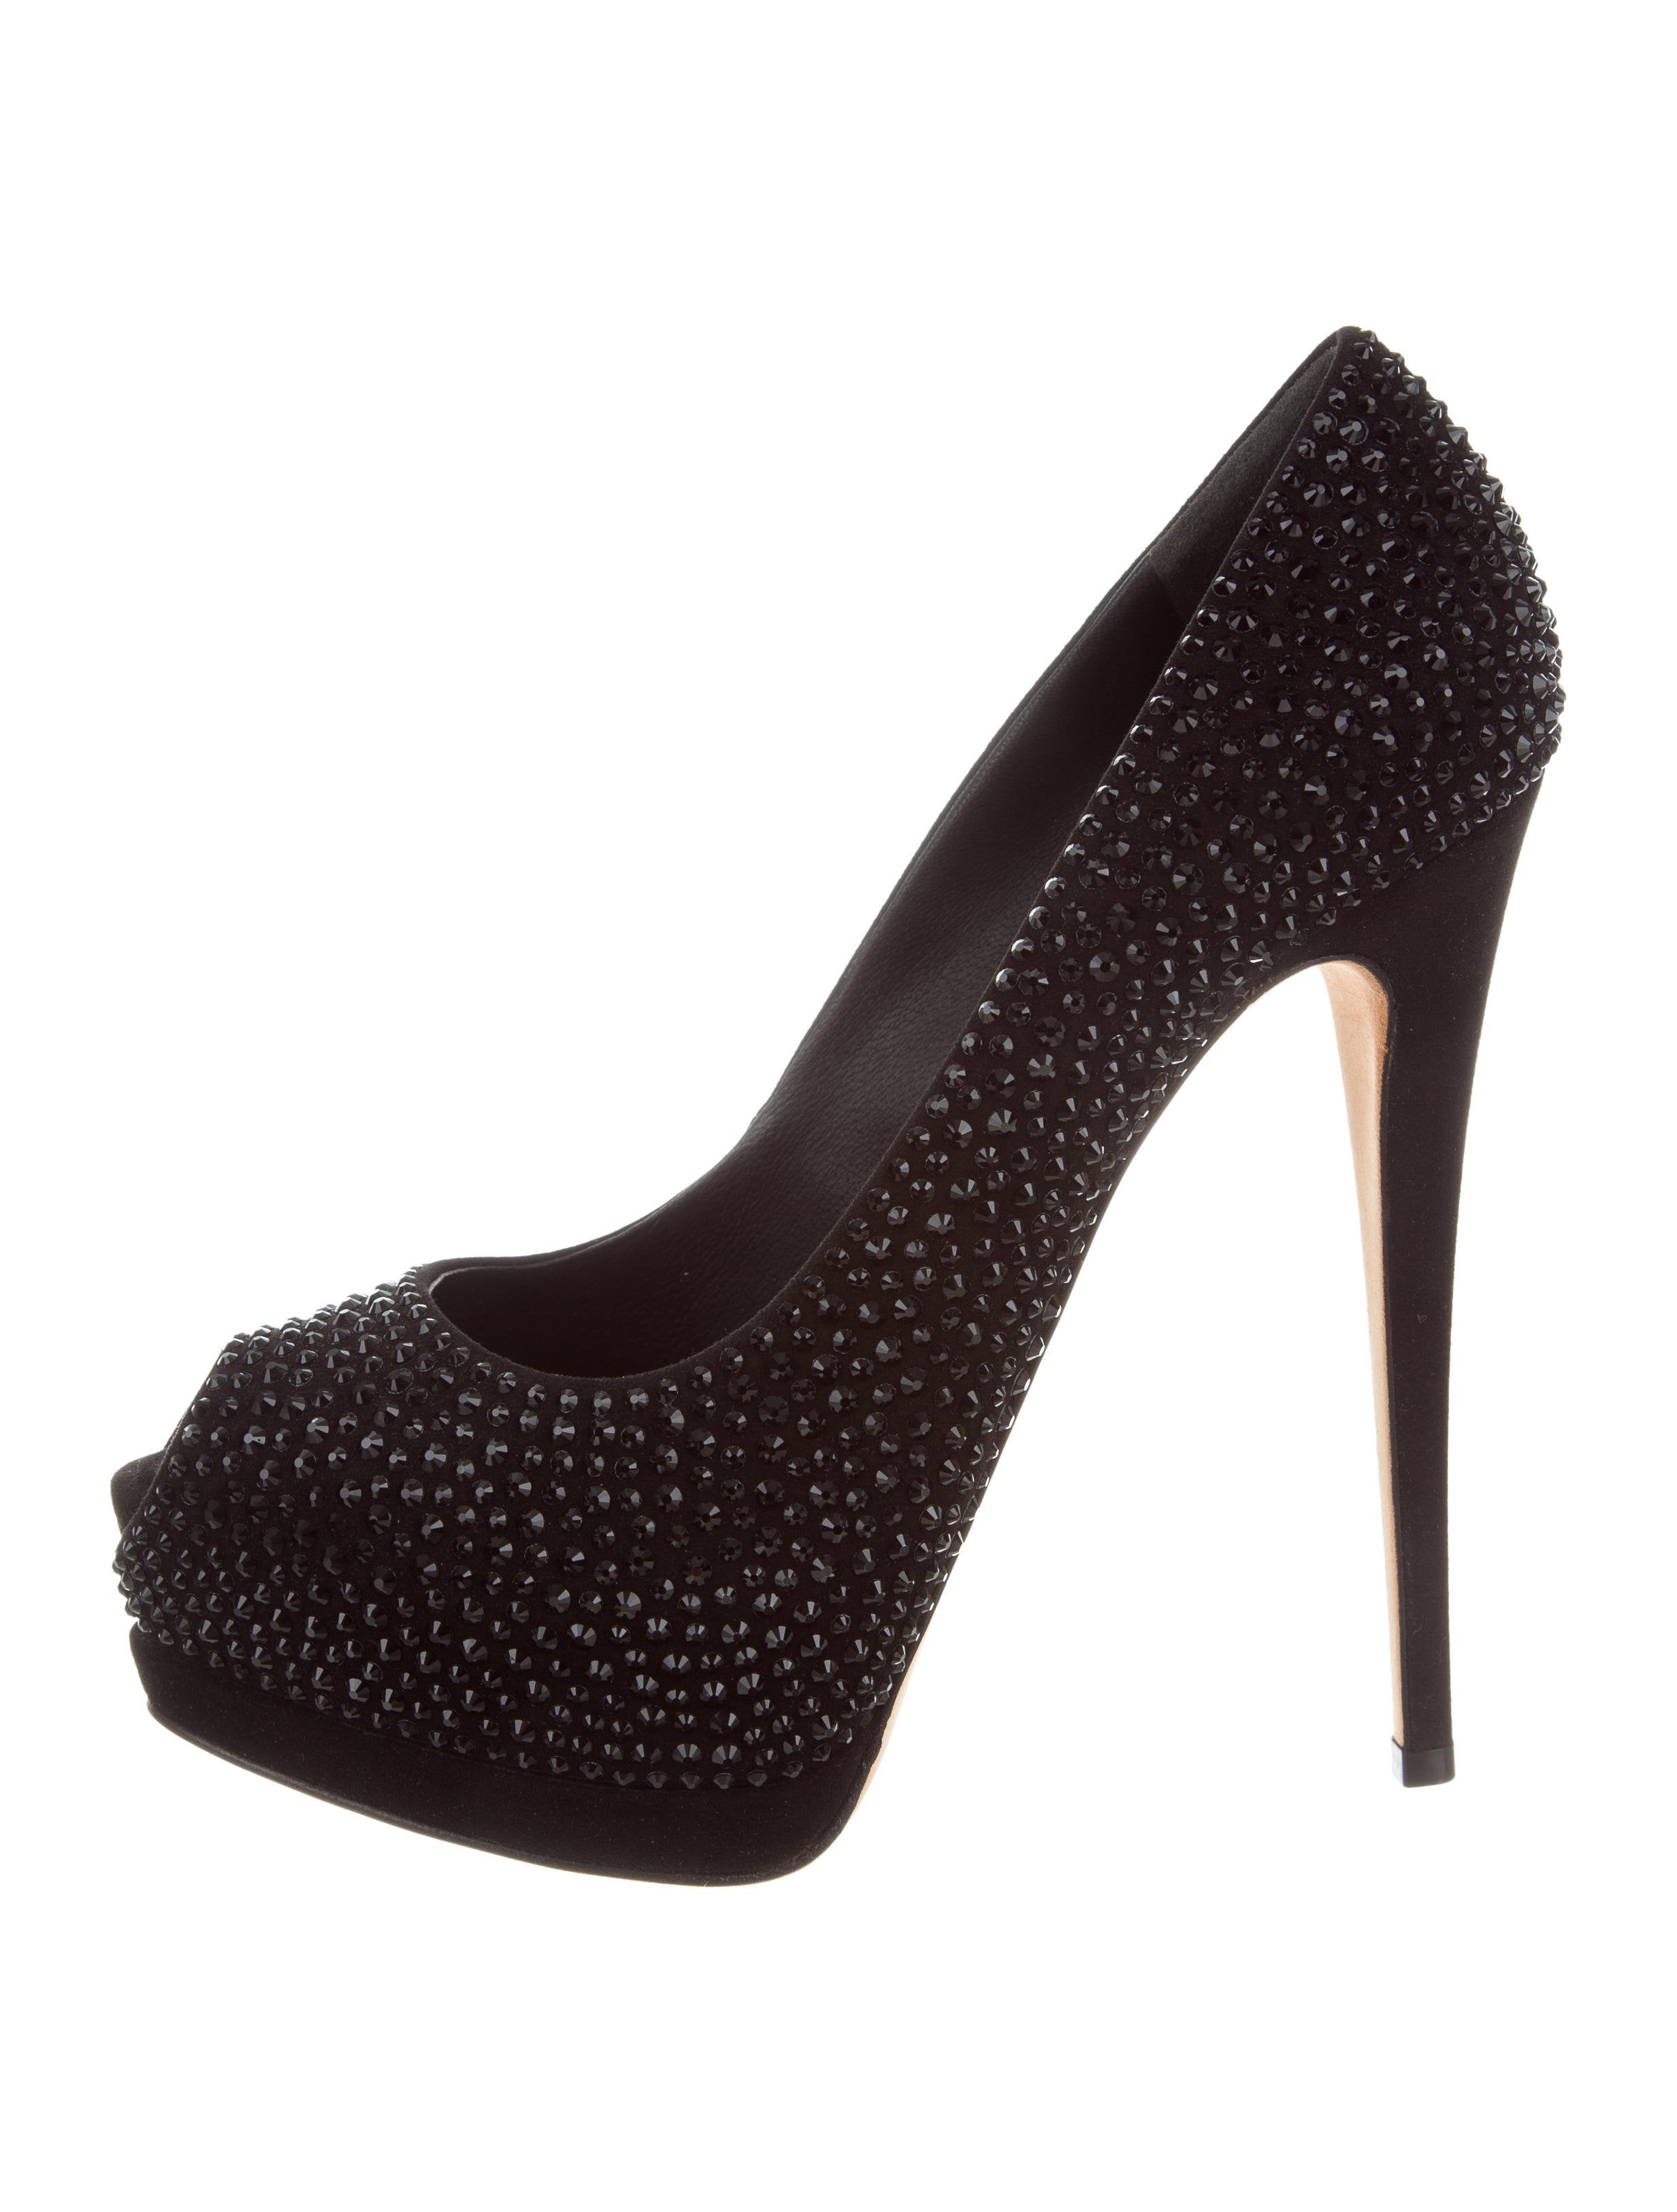 clearance best store to get footaction sale online Giuseppe Zanotti Sharon Strass Pumps extremely online original for sale BQjsDt